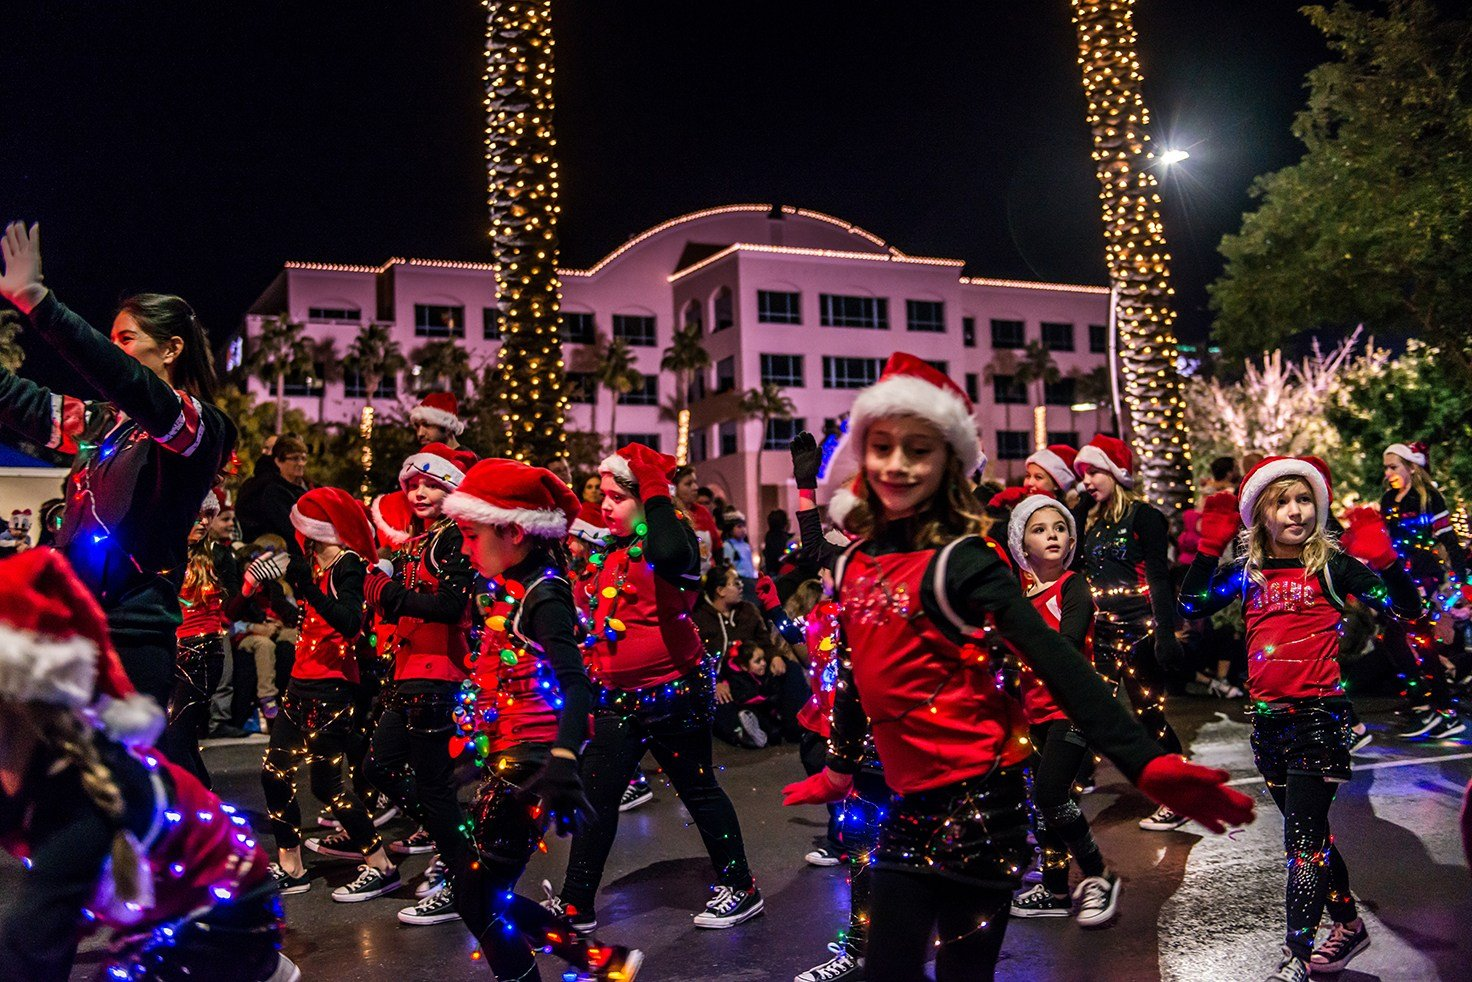 The Parade of Lights begins at 7 p.m. and the parade route will start at the corner of Arizona Avenue and Frye Road. (Source: City of Chandler)